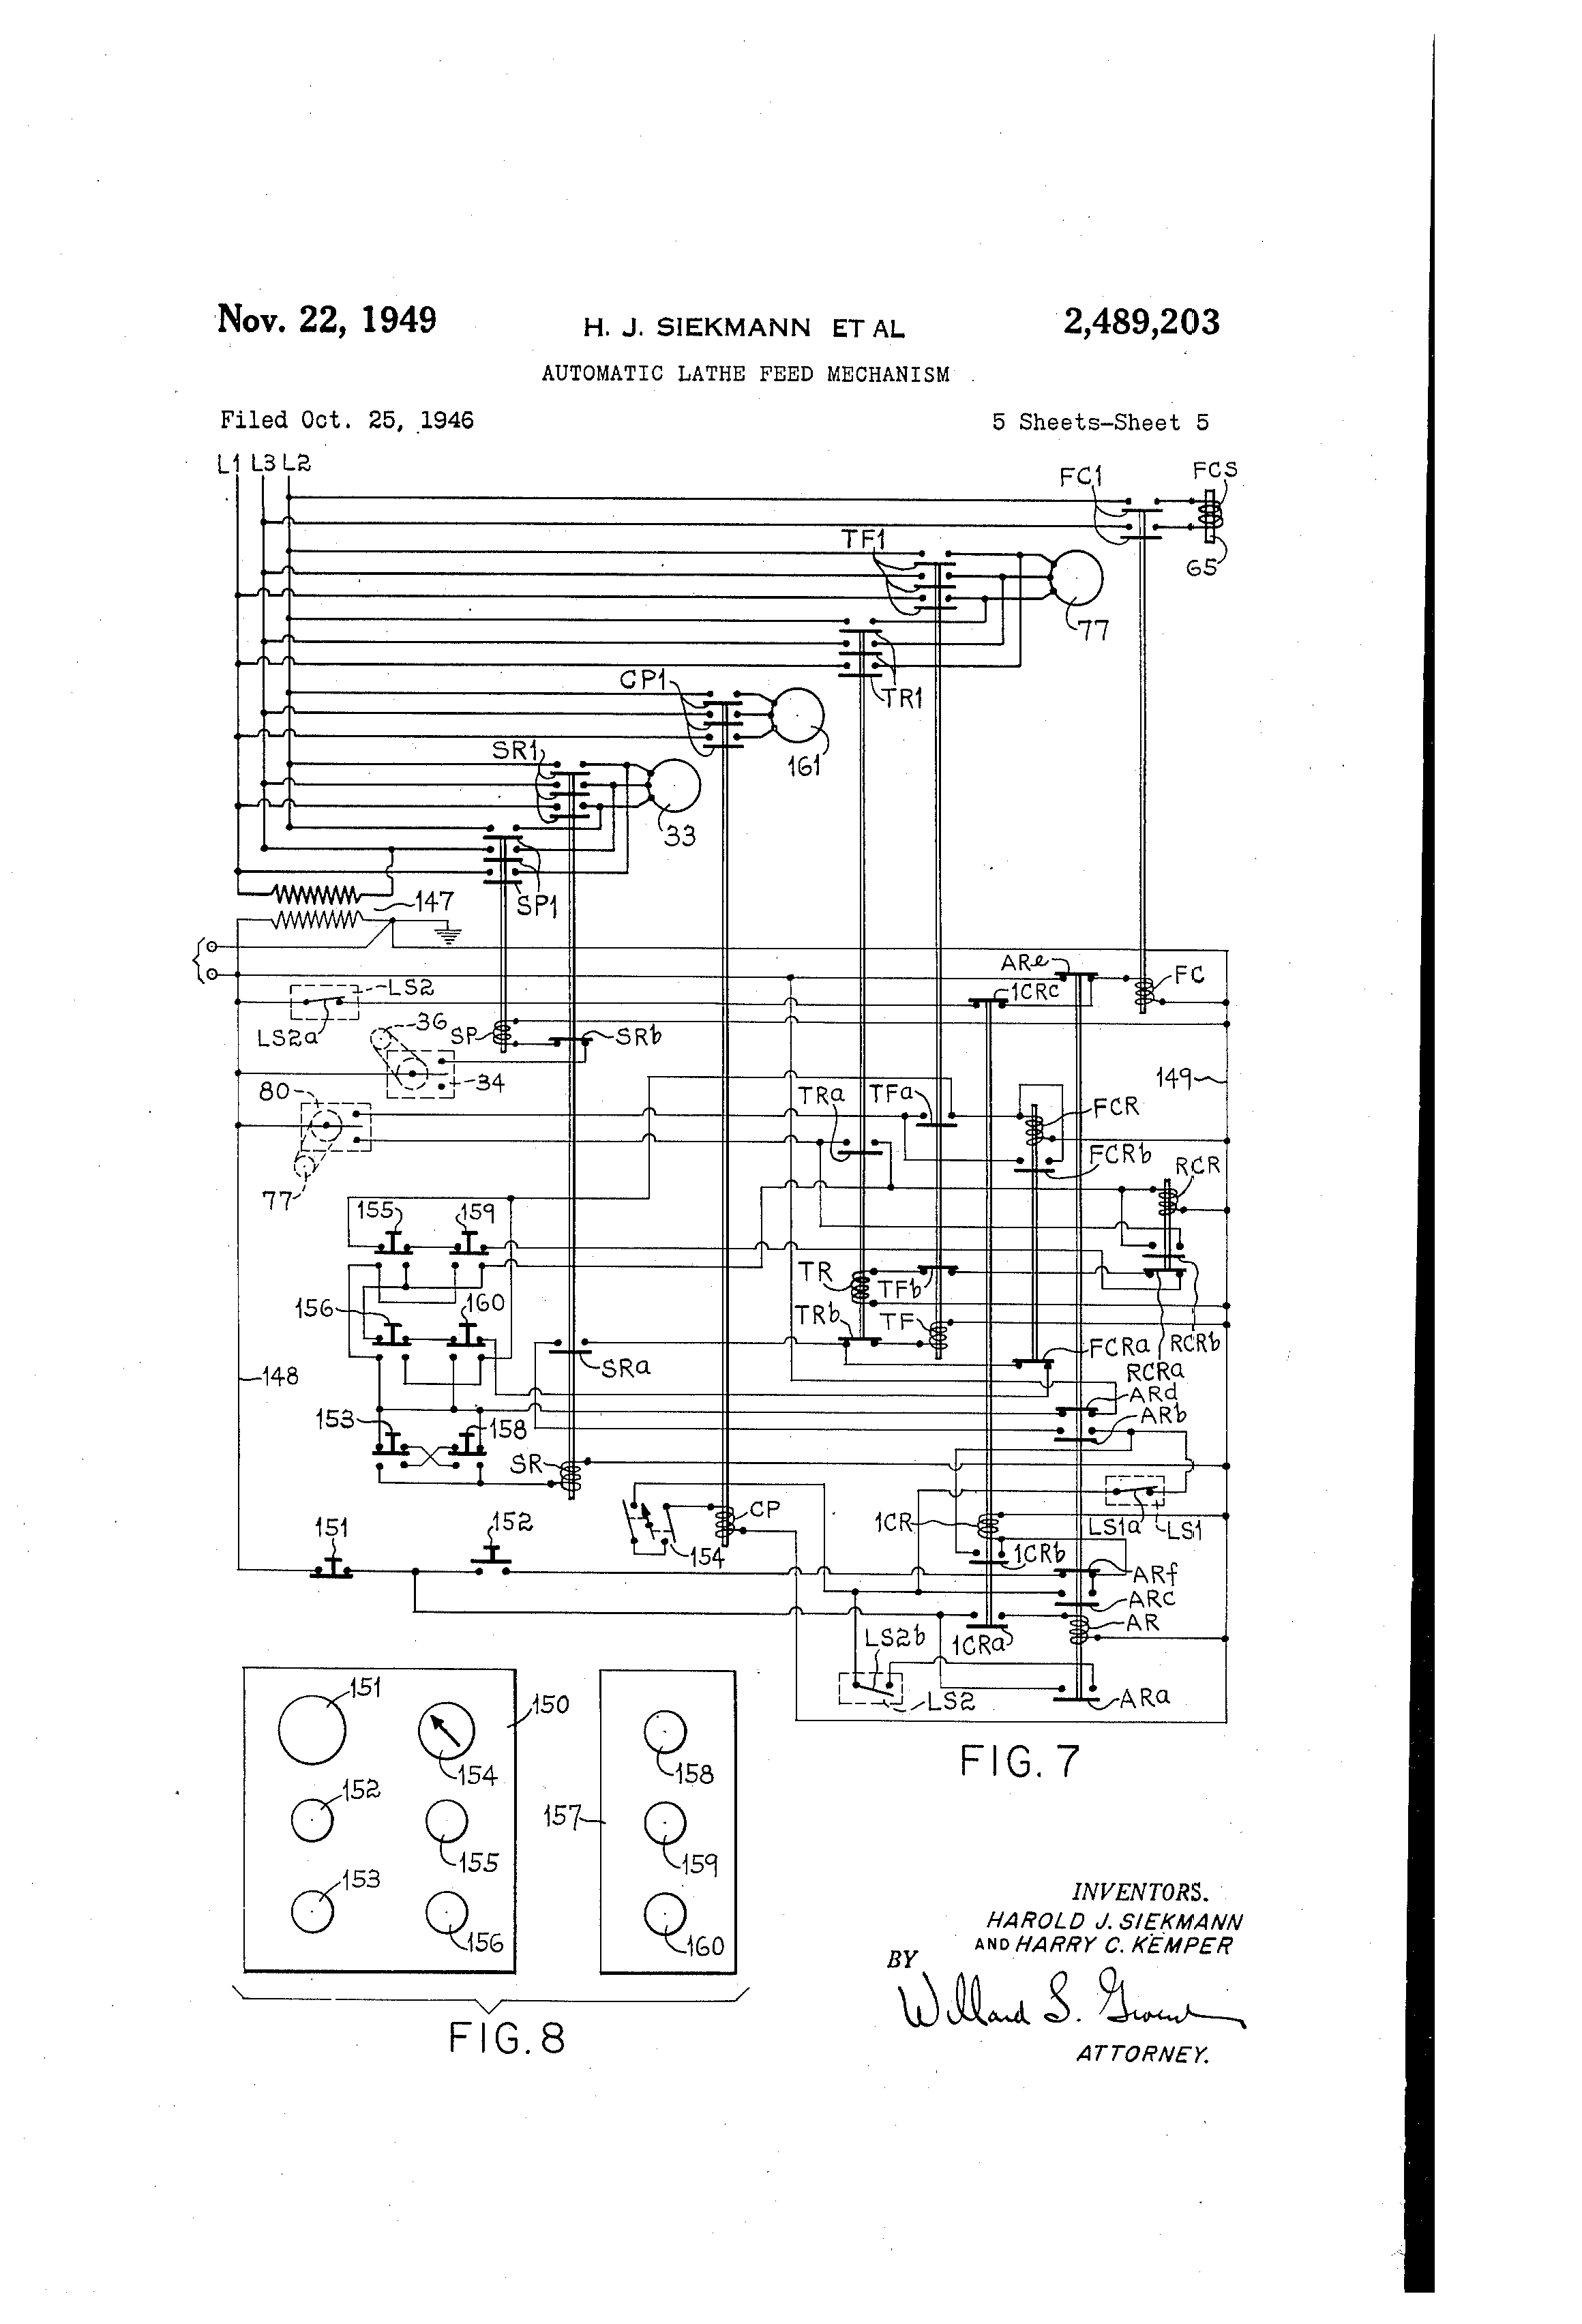 Wiring Diagram Of Chinese Lathe